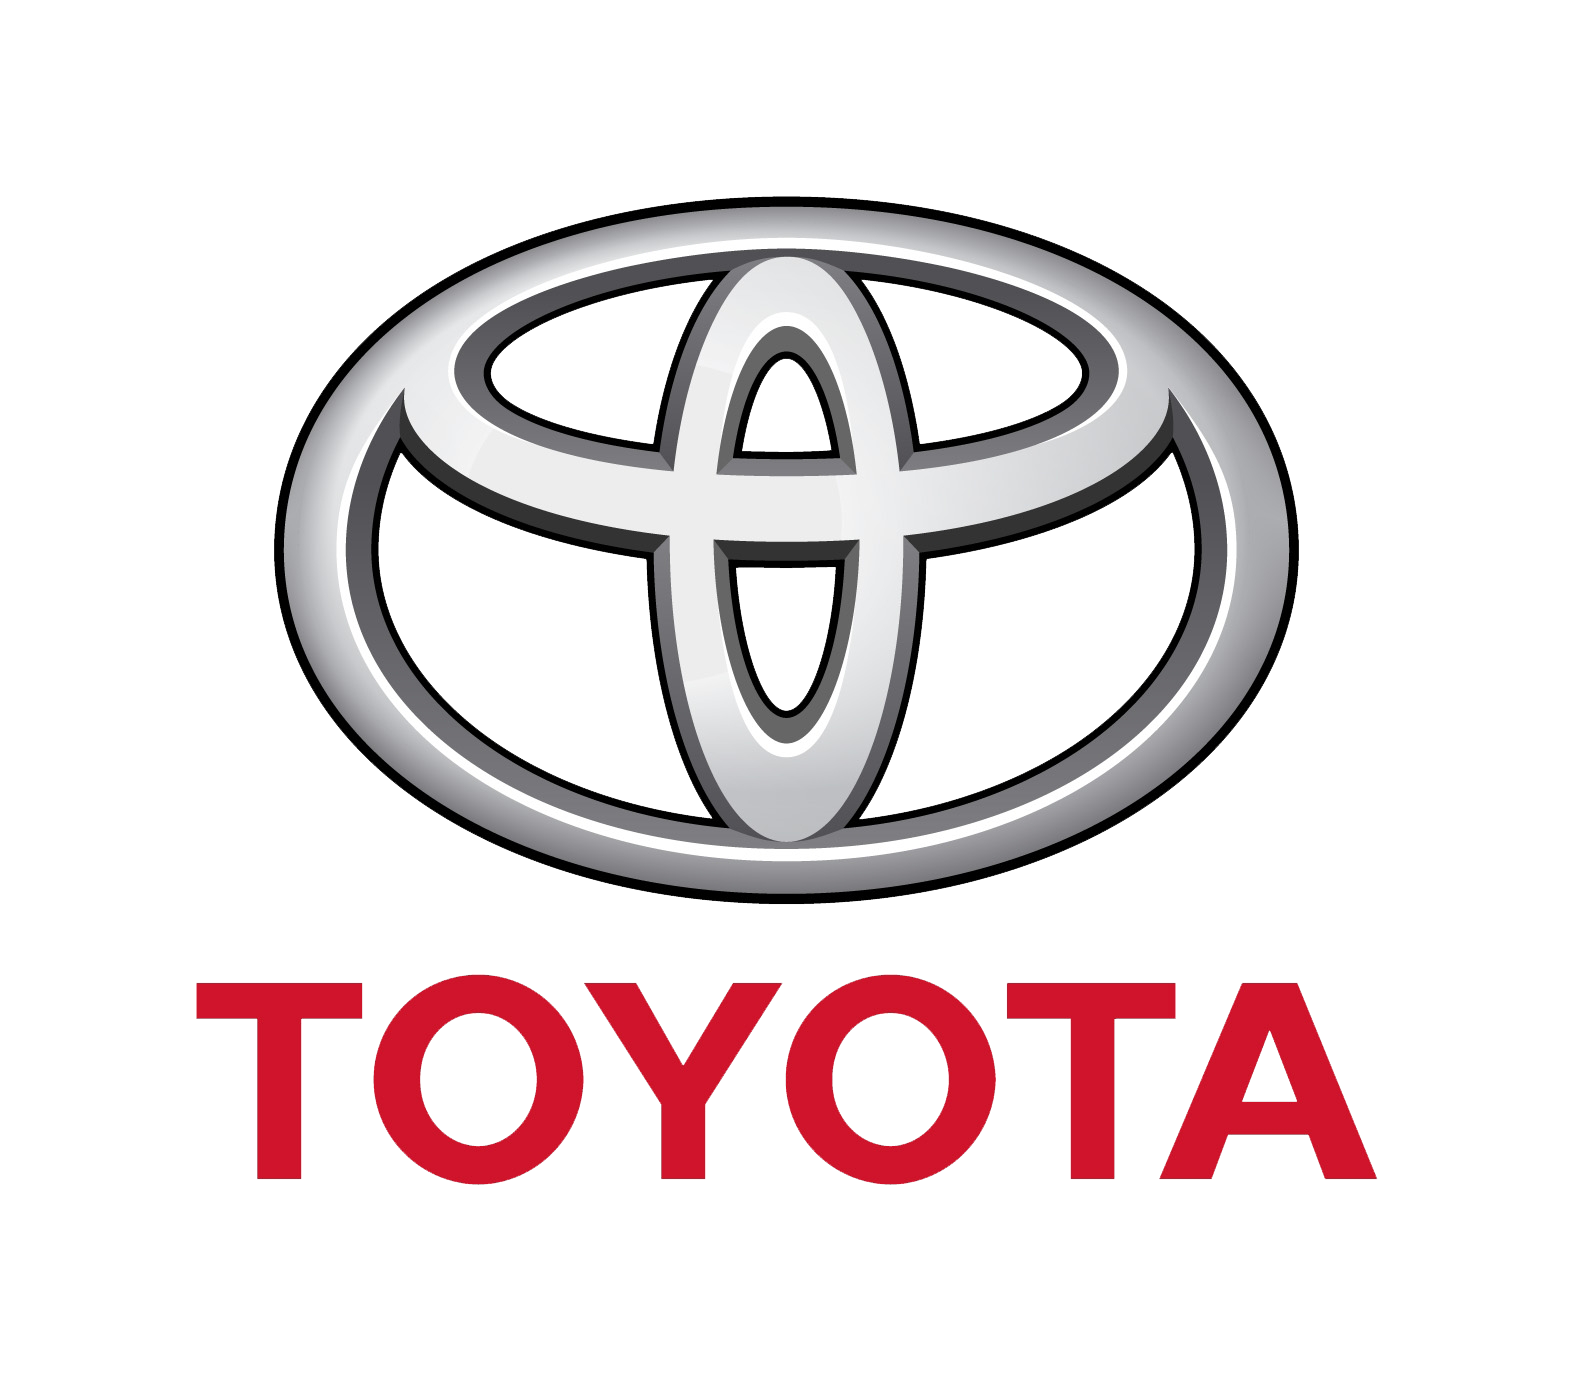 Toyota Logo Png Clipart PNG Image-Toyota Logo Png Clipart PNG Image-15